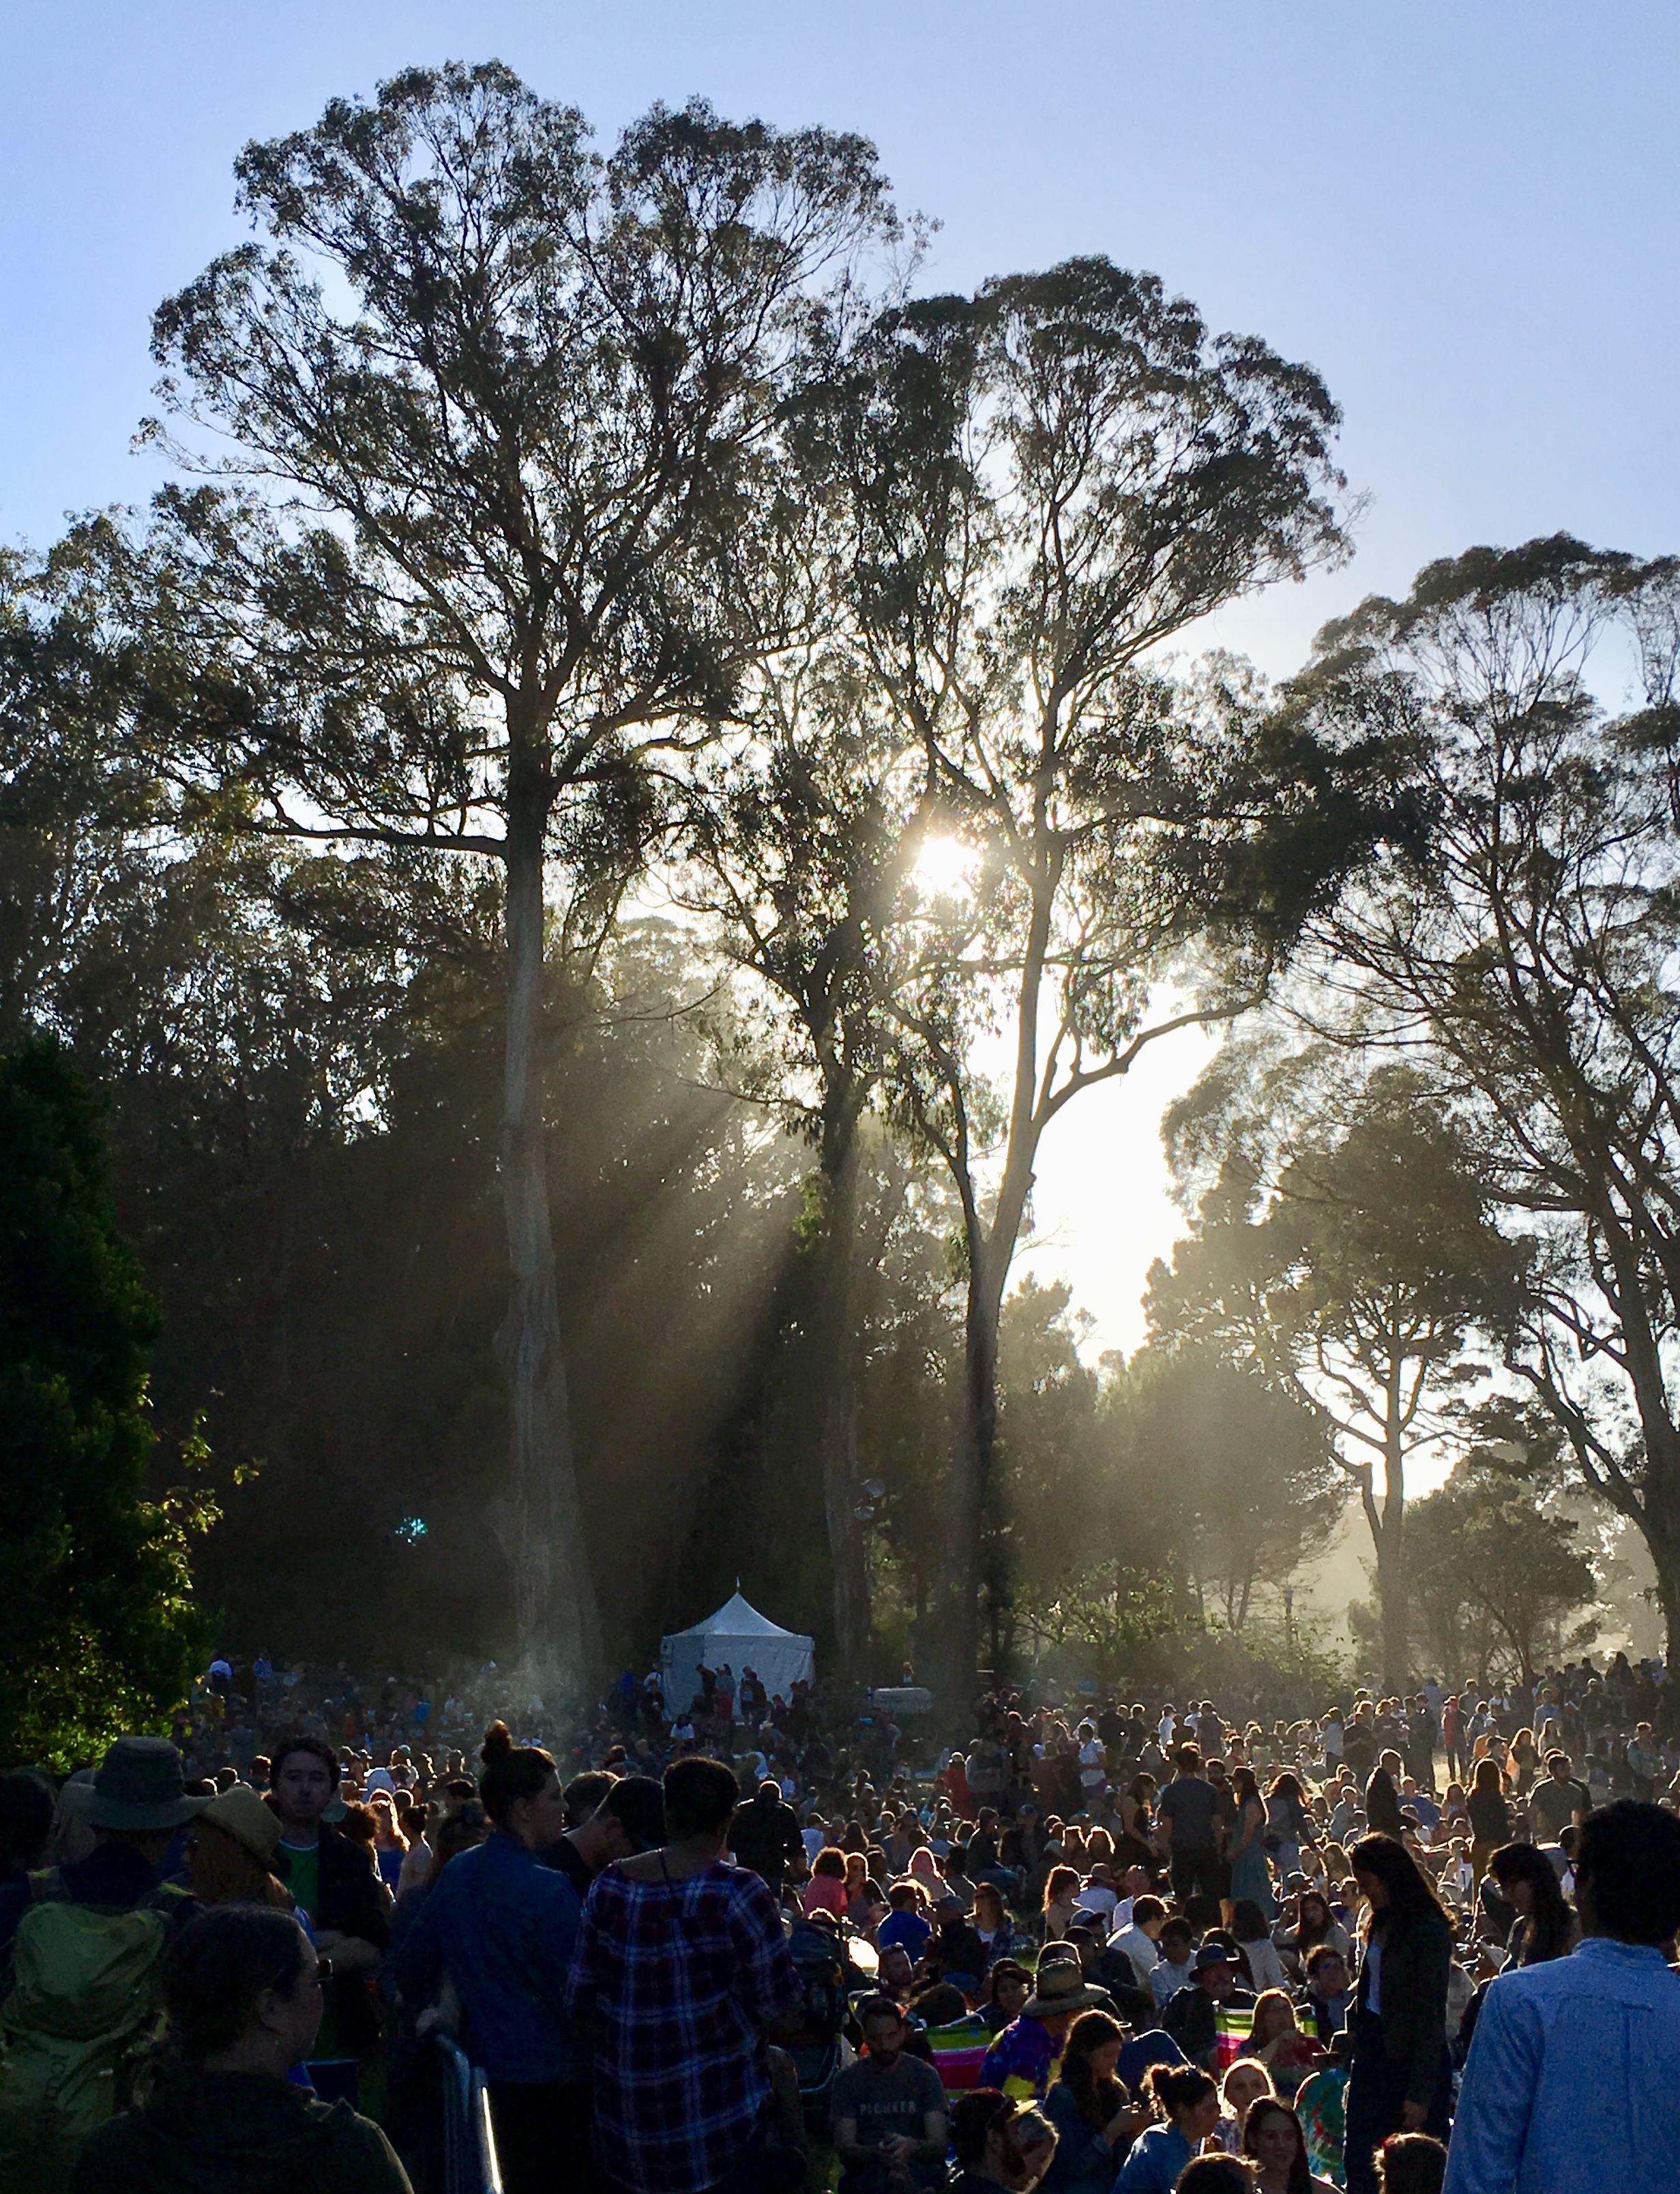 Crowd at Hardly Strictly Bluegrass festival